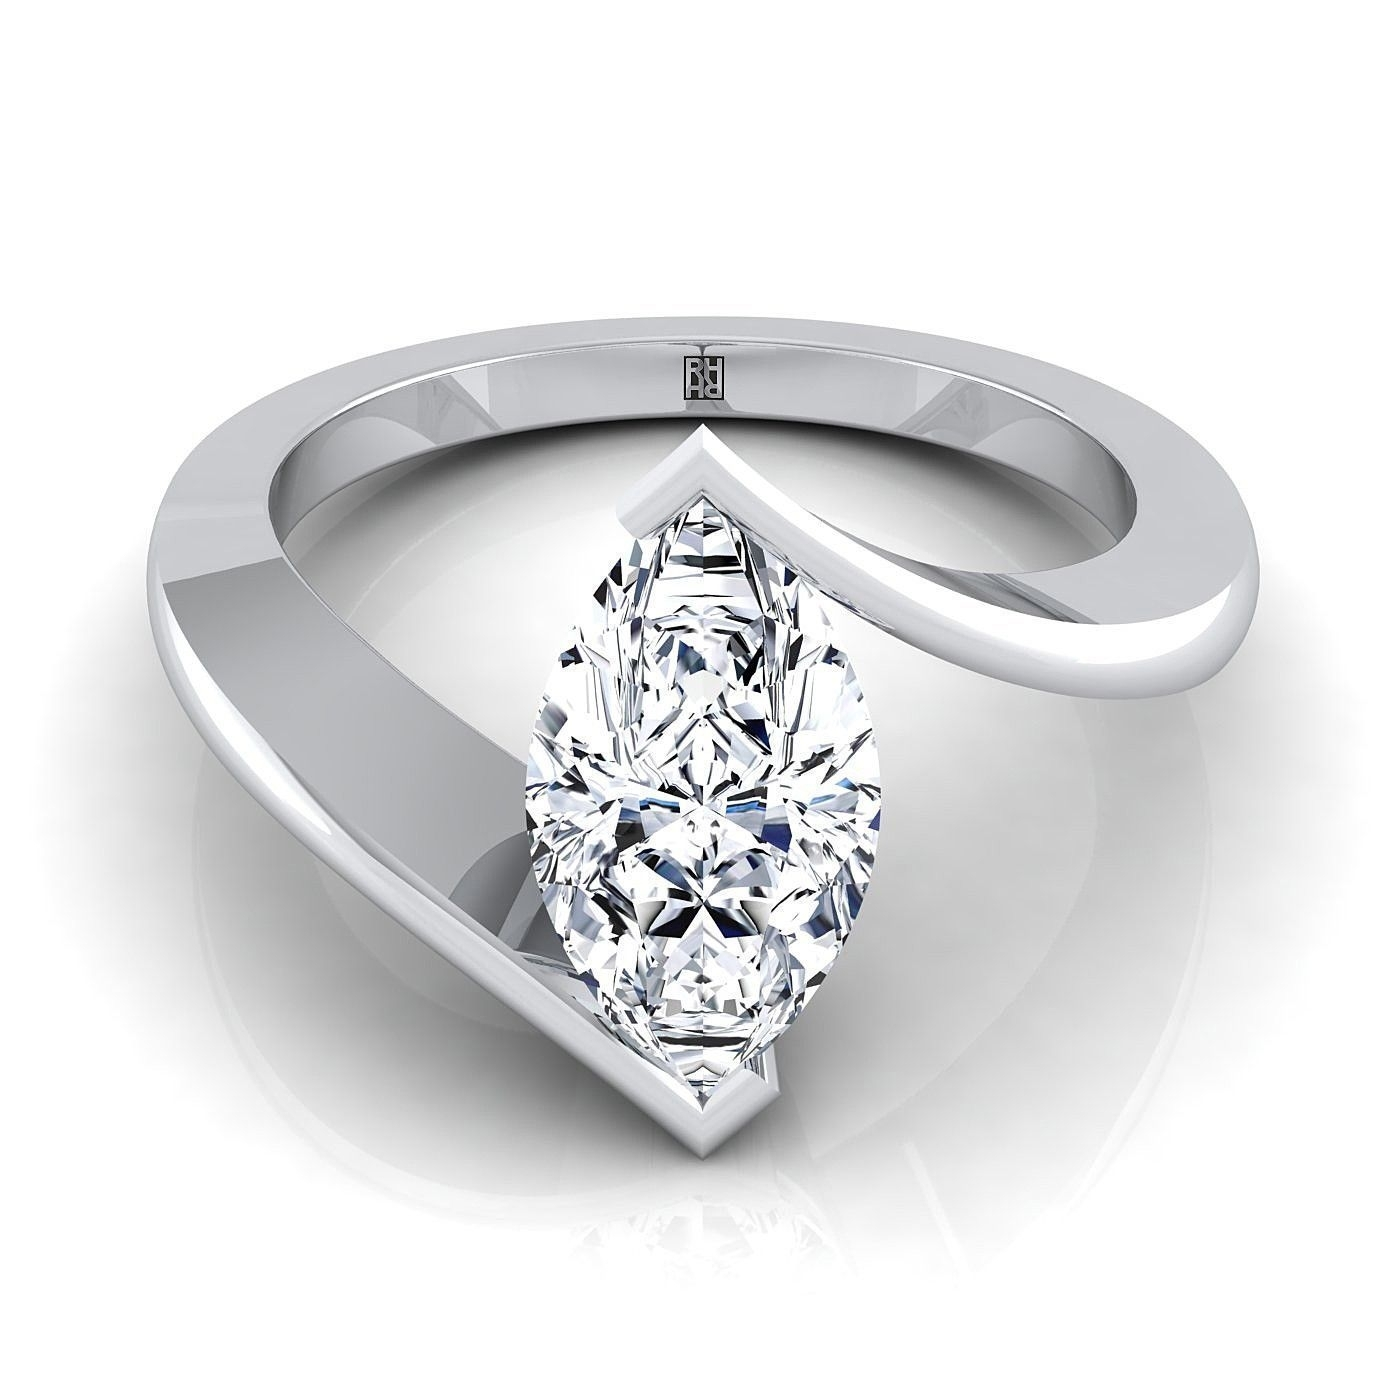 Marquise Diamond Solitaire Engagement Ring In 14K White Gold Throughout 2017 Marquise And Princess Cut Composite Diamond Six Stone Anniversary Bands (View 4 of 15)